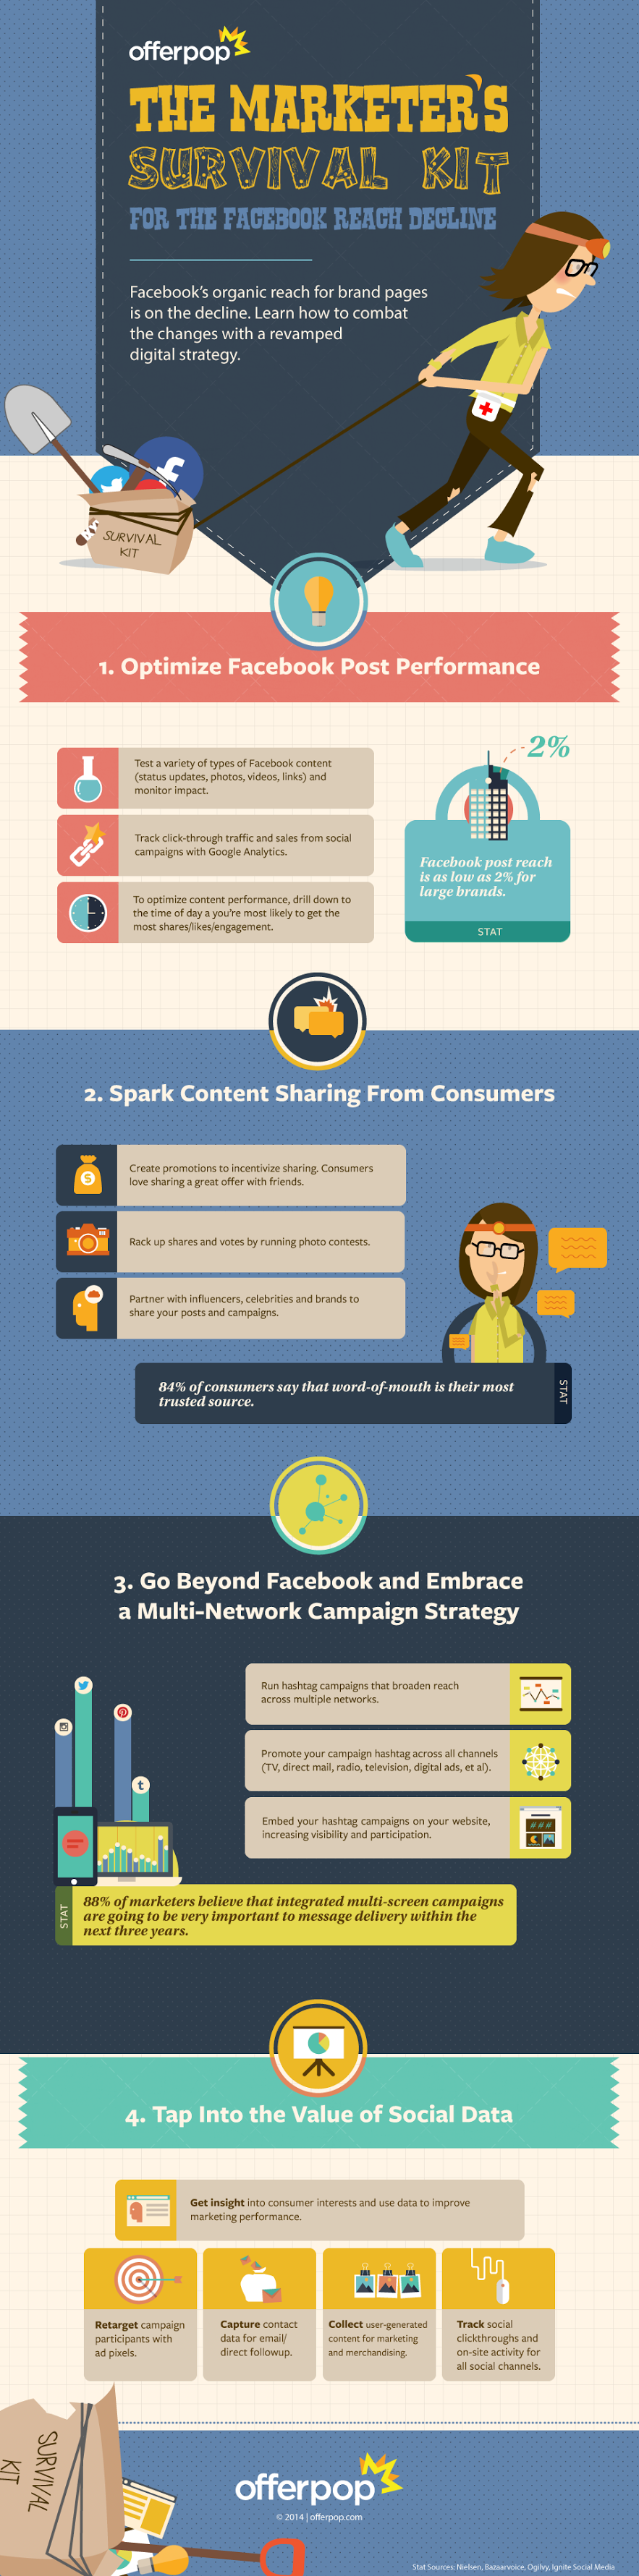 The Four-Step Game Plan to Combat Facebook's Declining Organic Reach - infographic